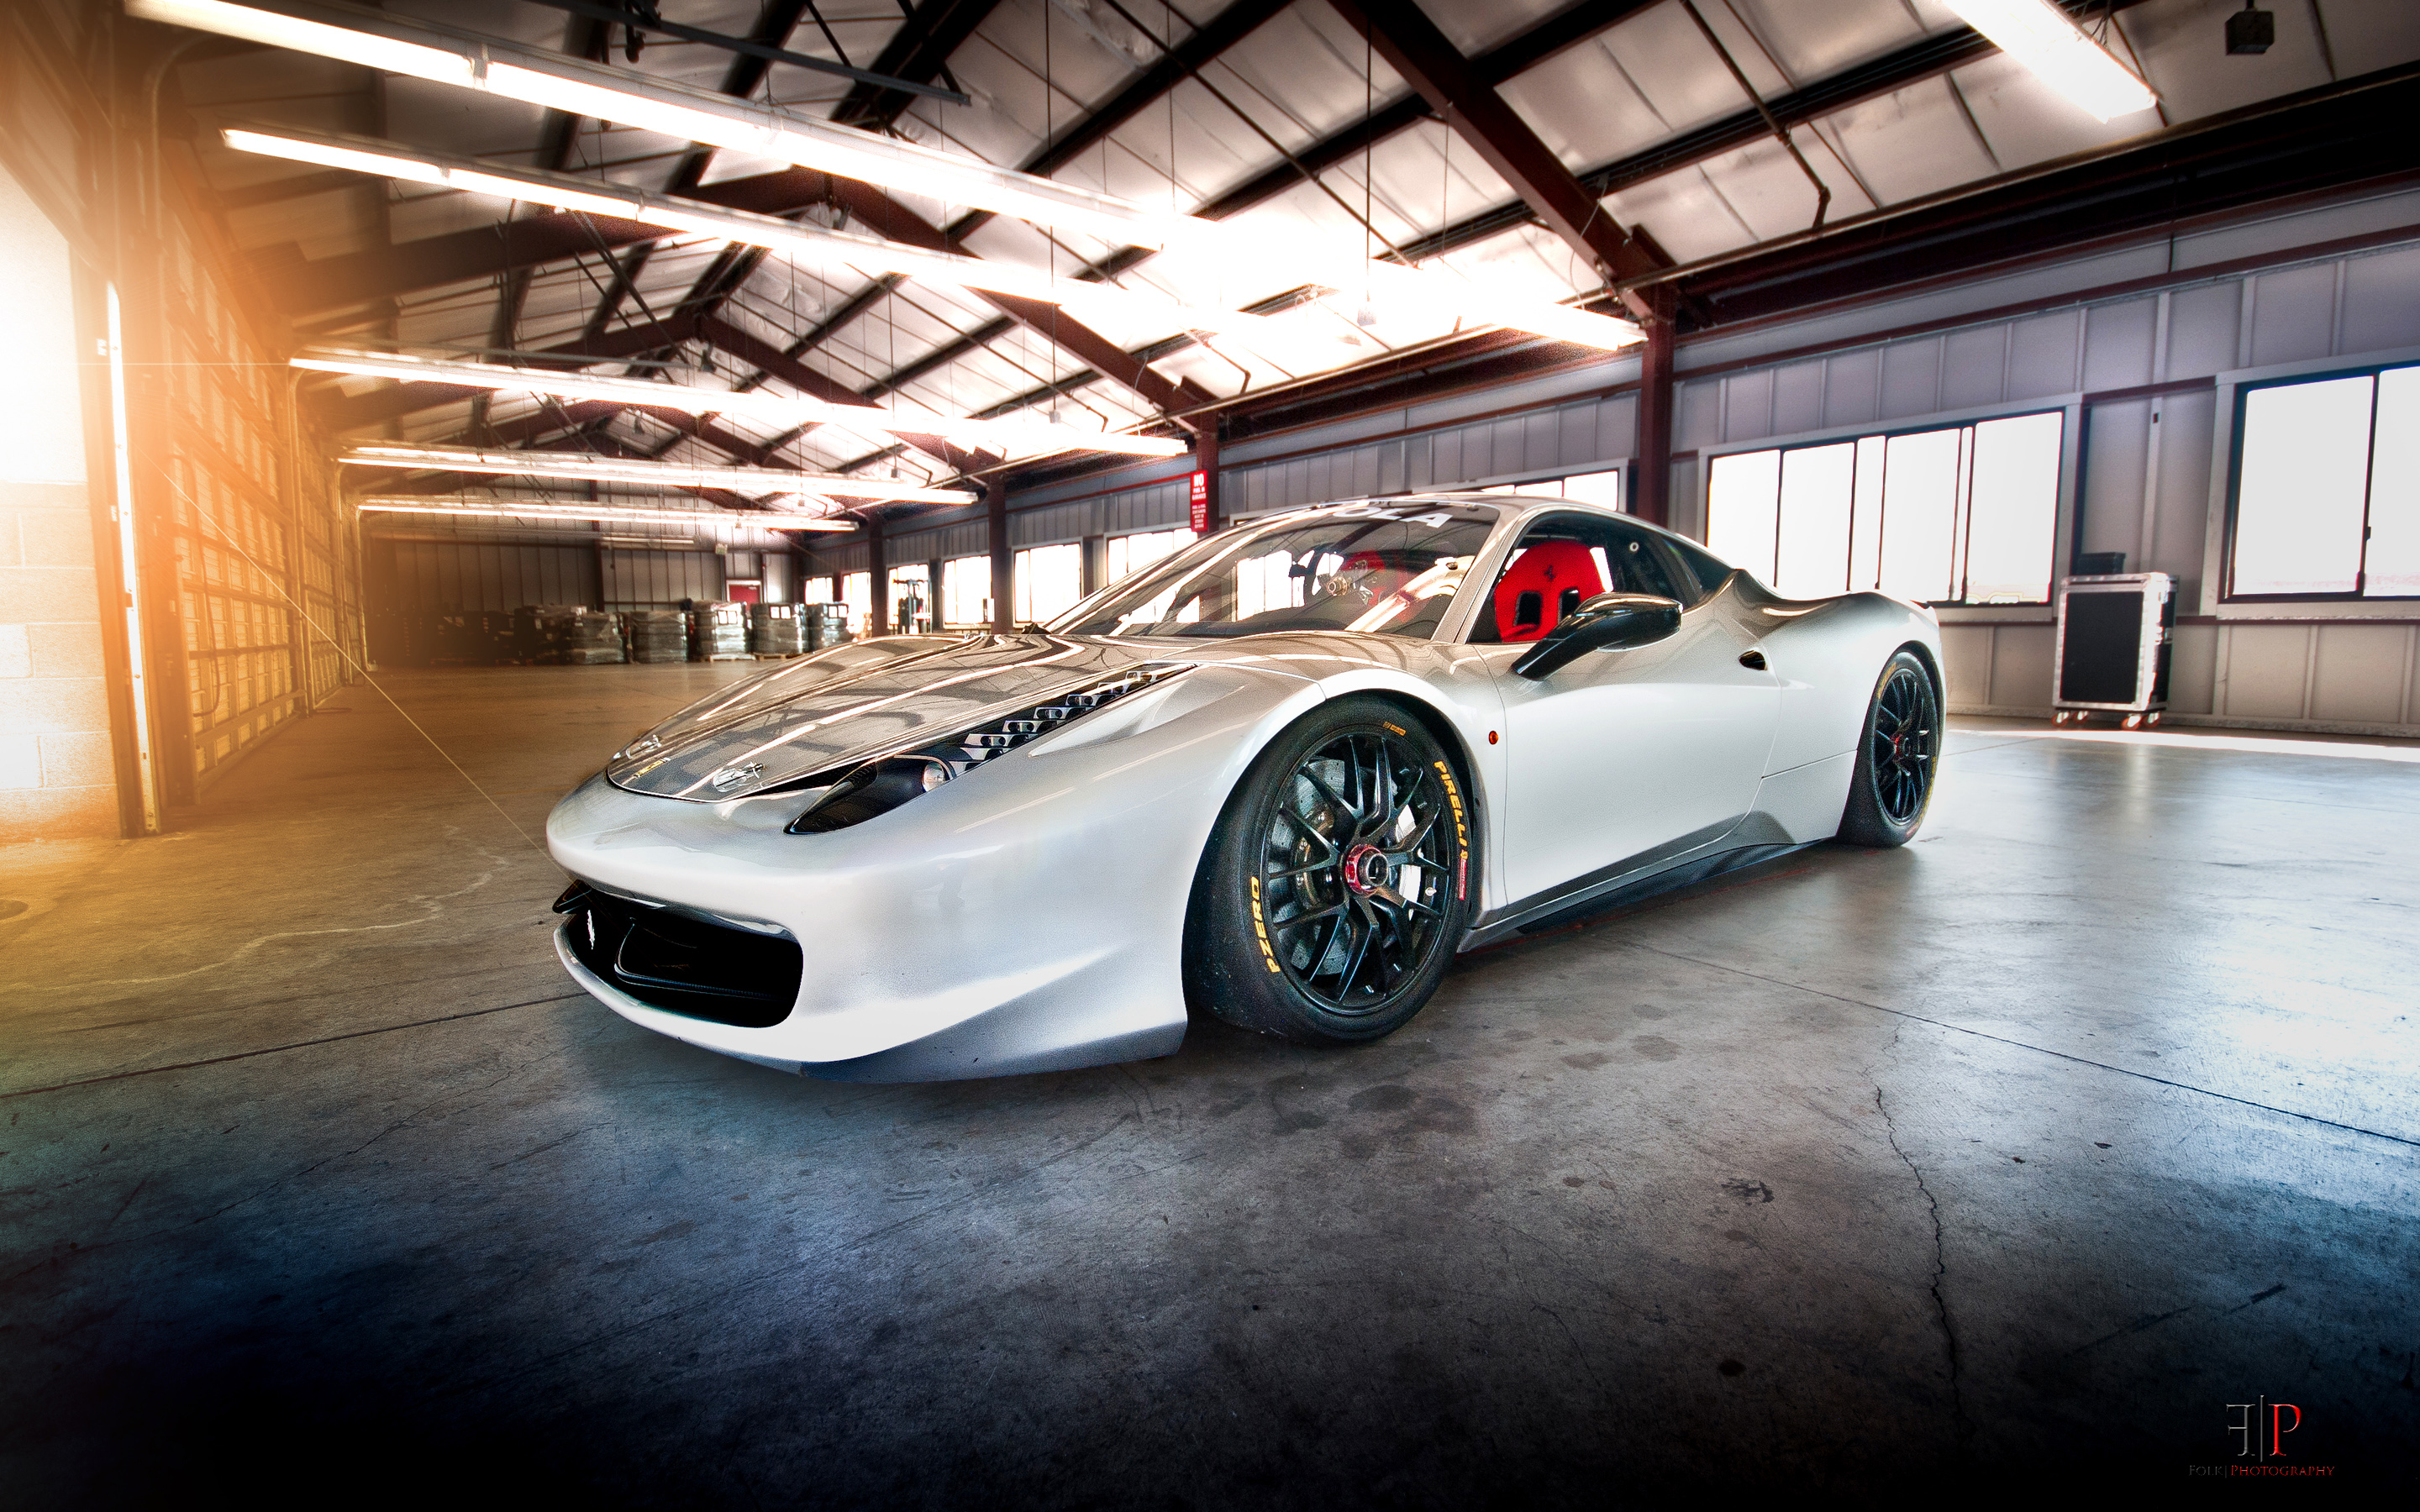 Scuderia wallpapers photos and desktop backgrounds up to 8k white ferrari scuderia wallpaper voltagebd Image collections